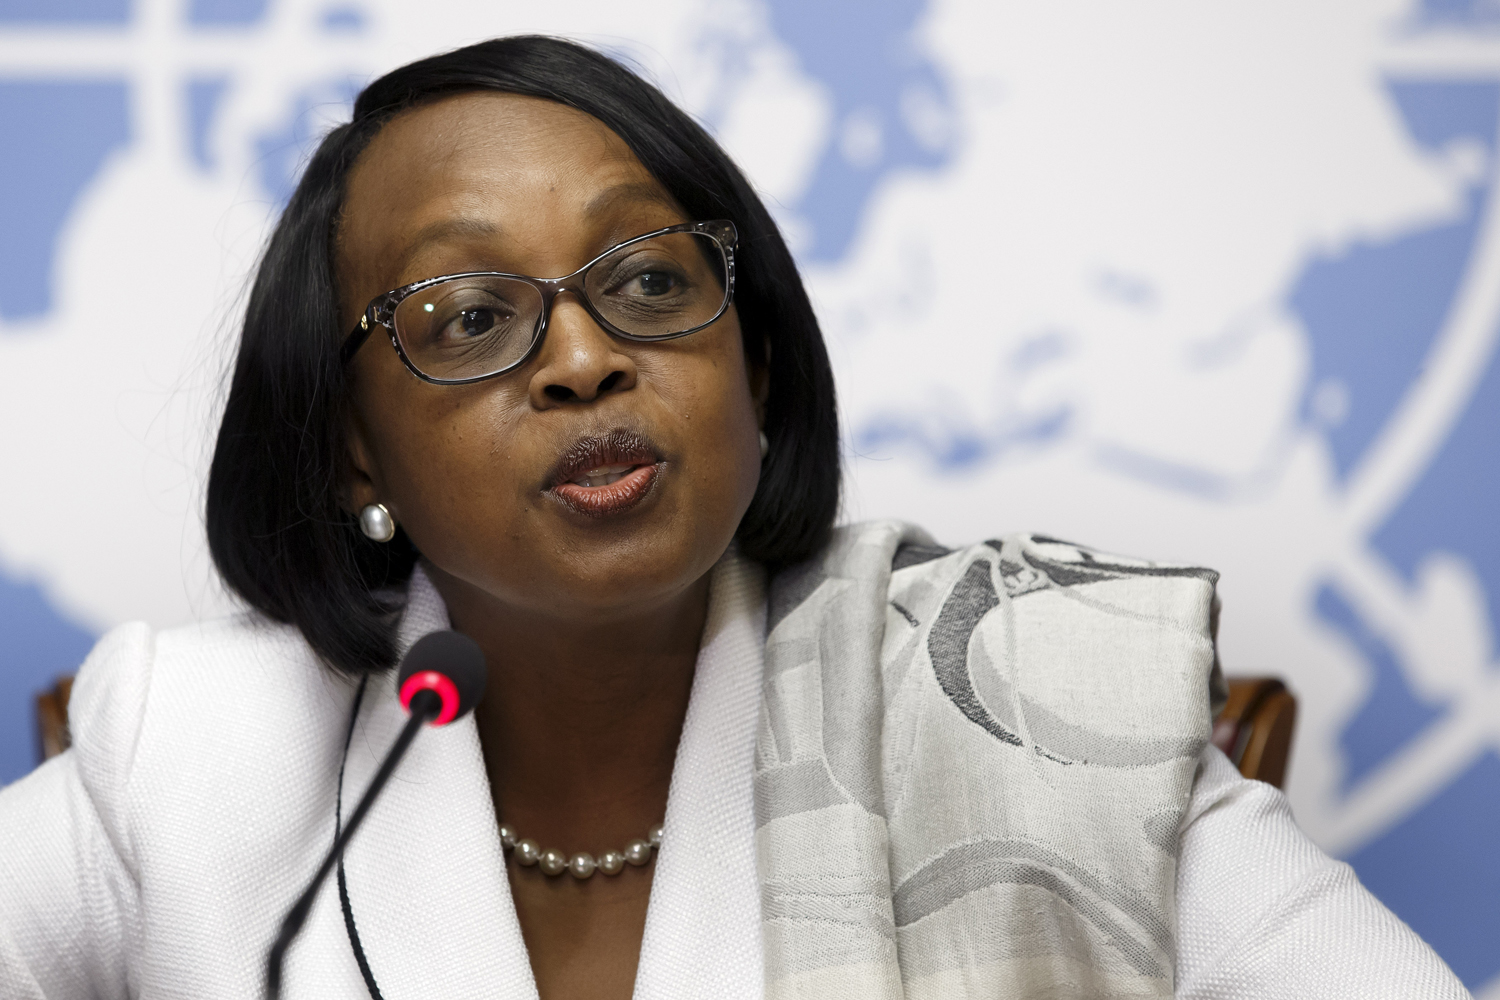 Matshidiso Moeti speaks to the media during a press conference at the European headquarters of the U.N. in Geneva on Jan.  27, 2015